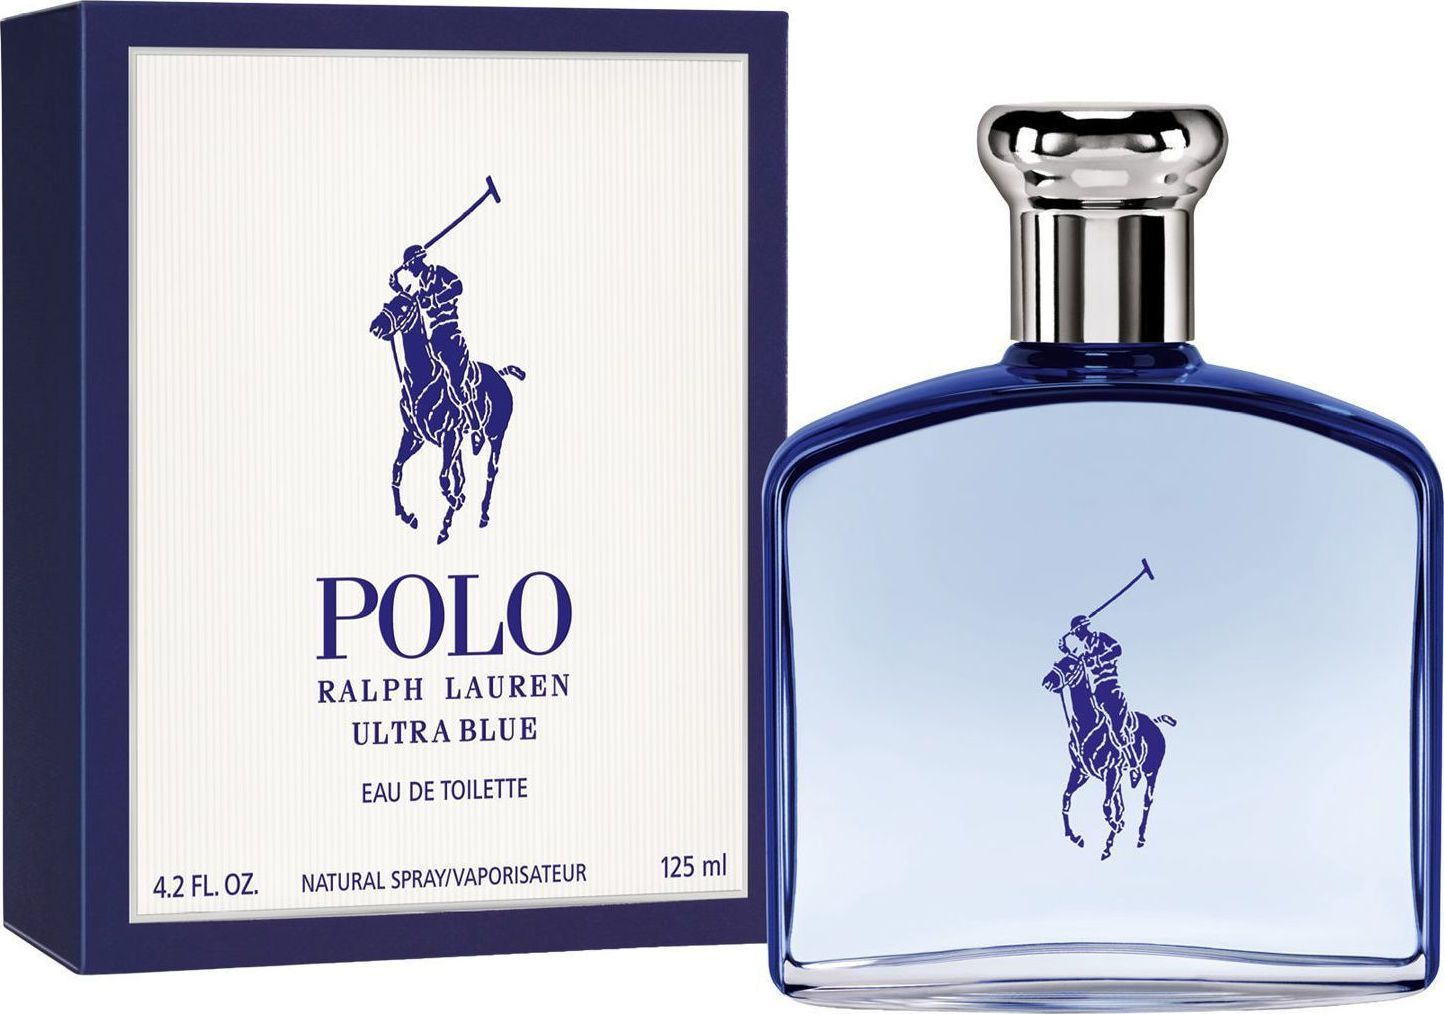 Perfume Polo Ralph Lauren Ultra Blue 125ml Eau de Toilette